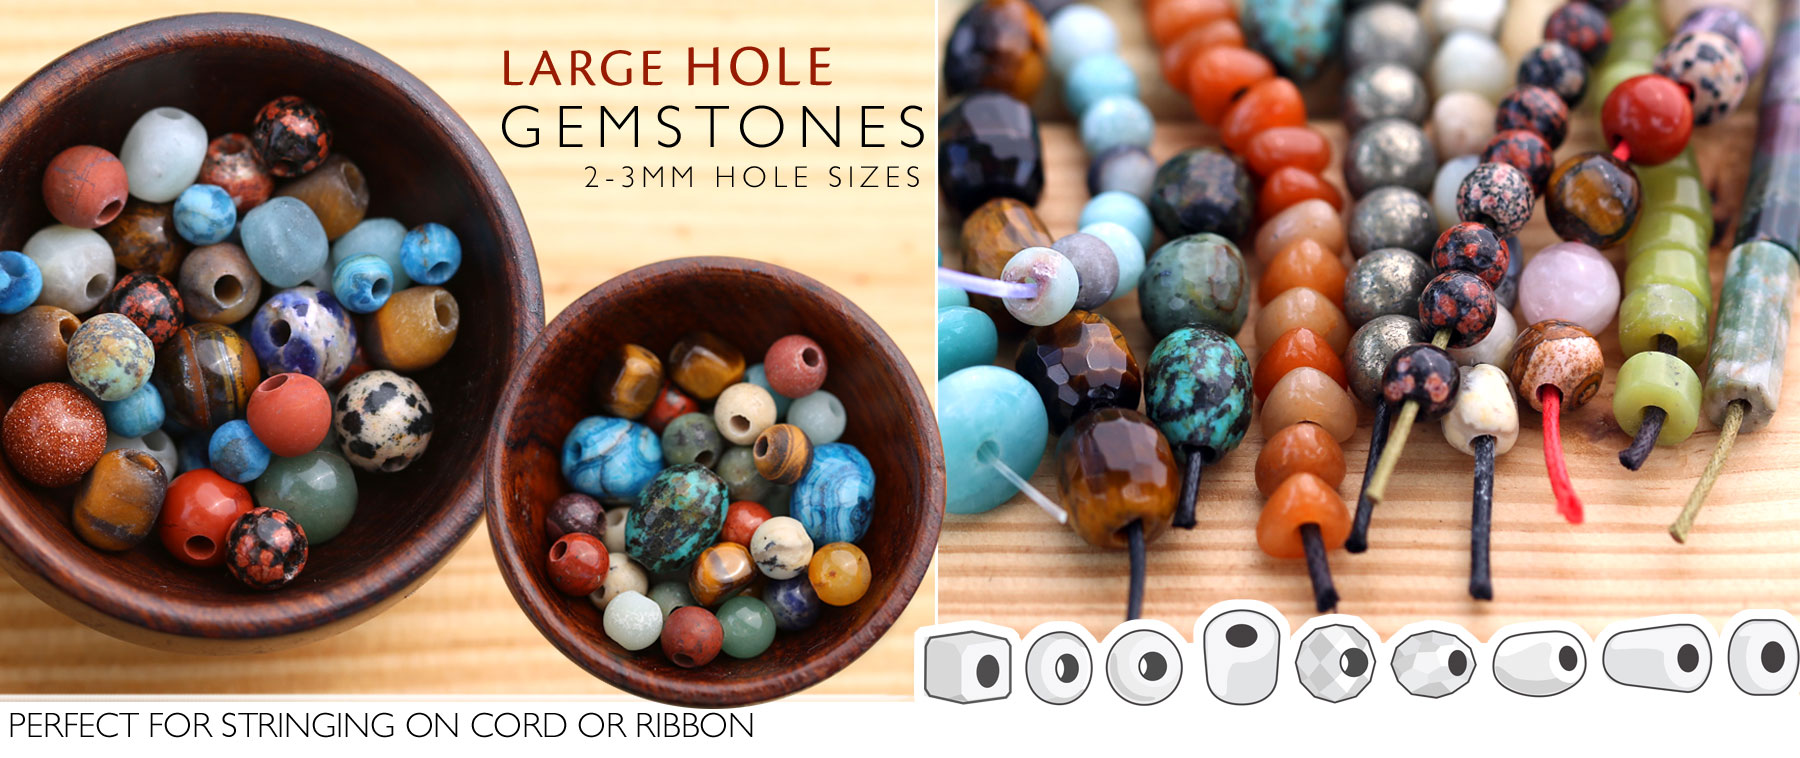 Large-Hole Gemstones